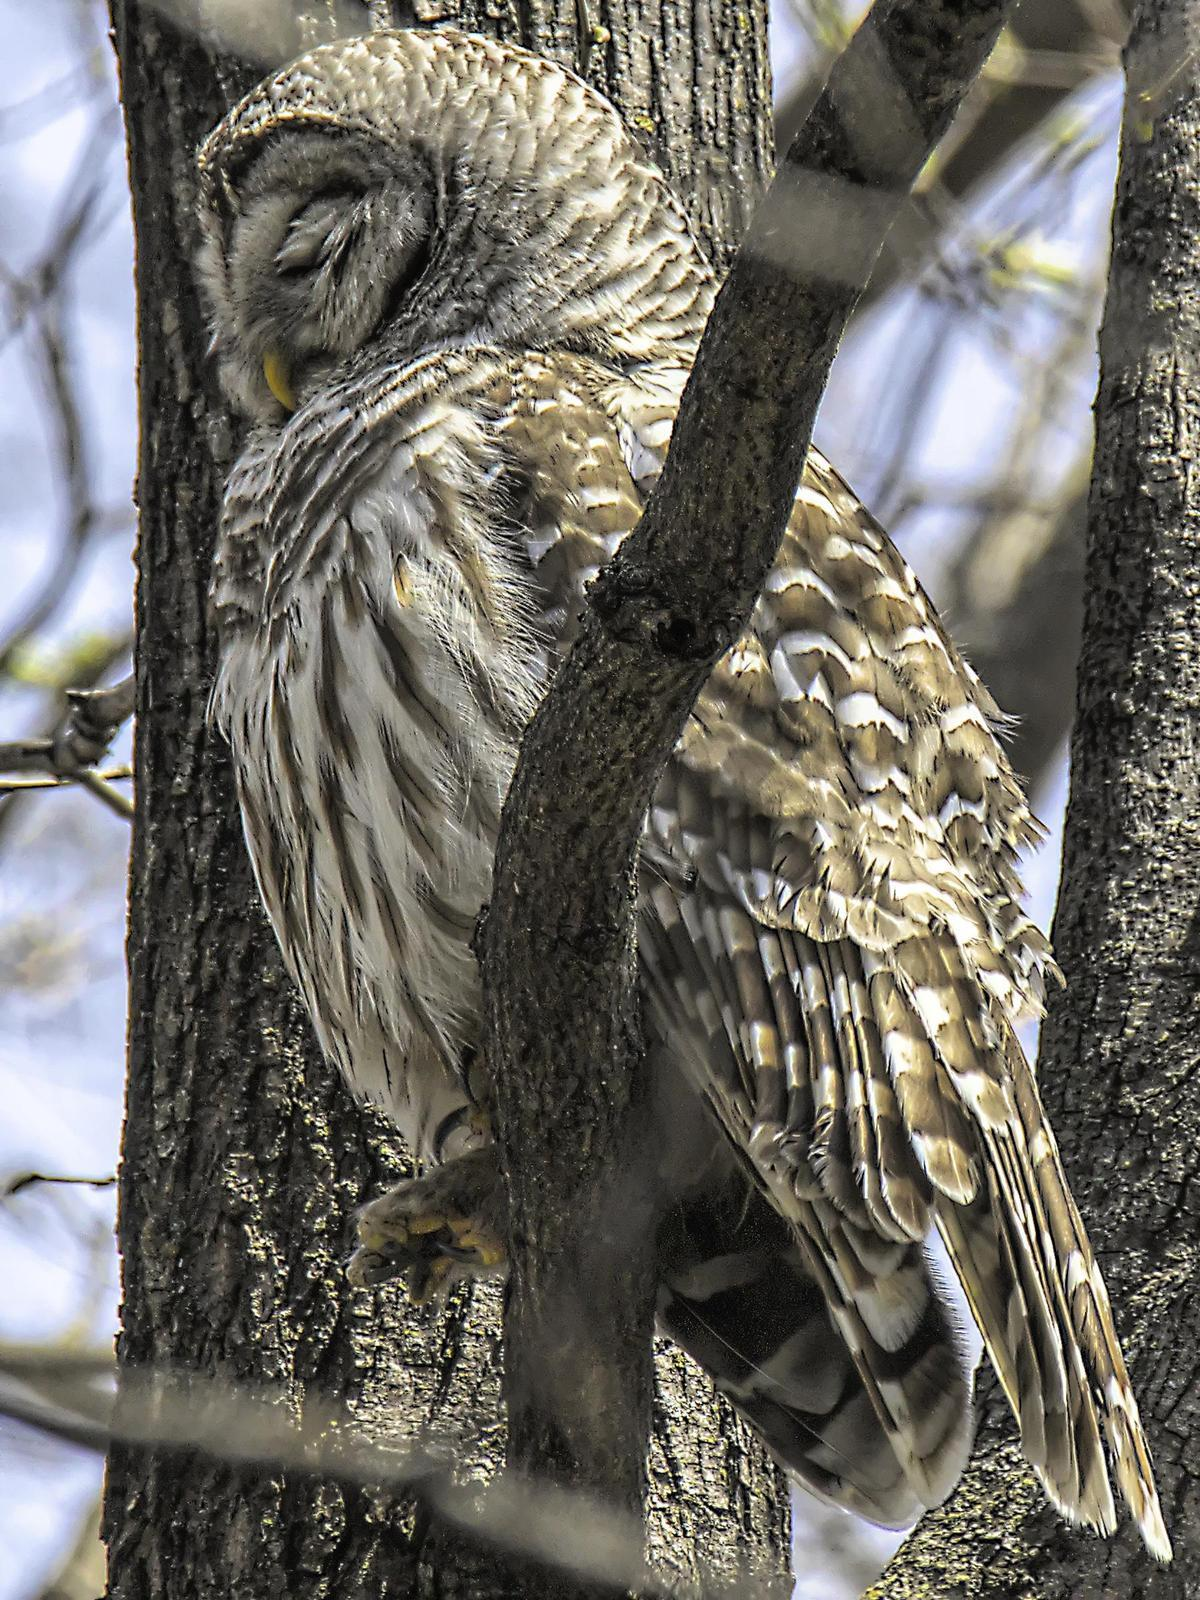 Barred Owl Photo by Dan Tallman